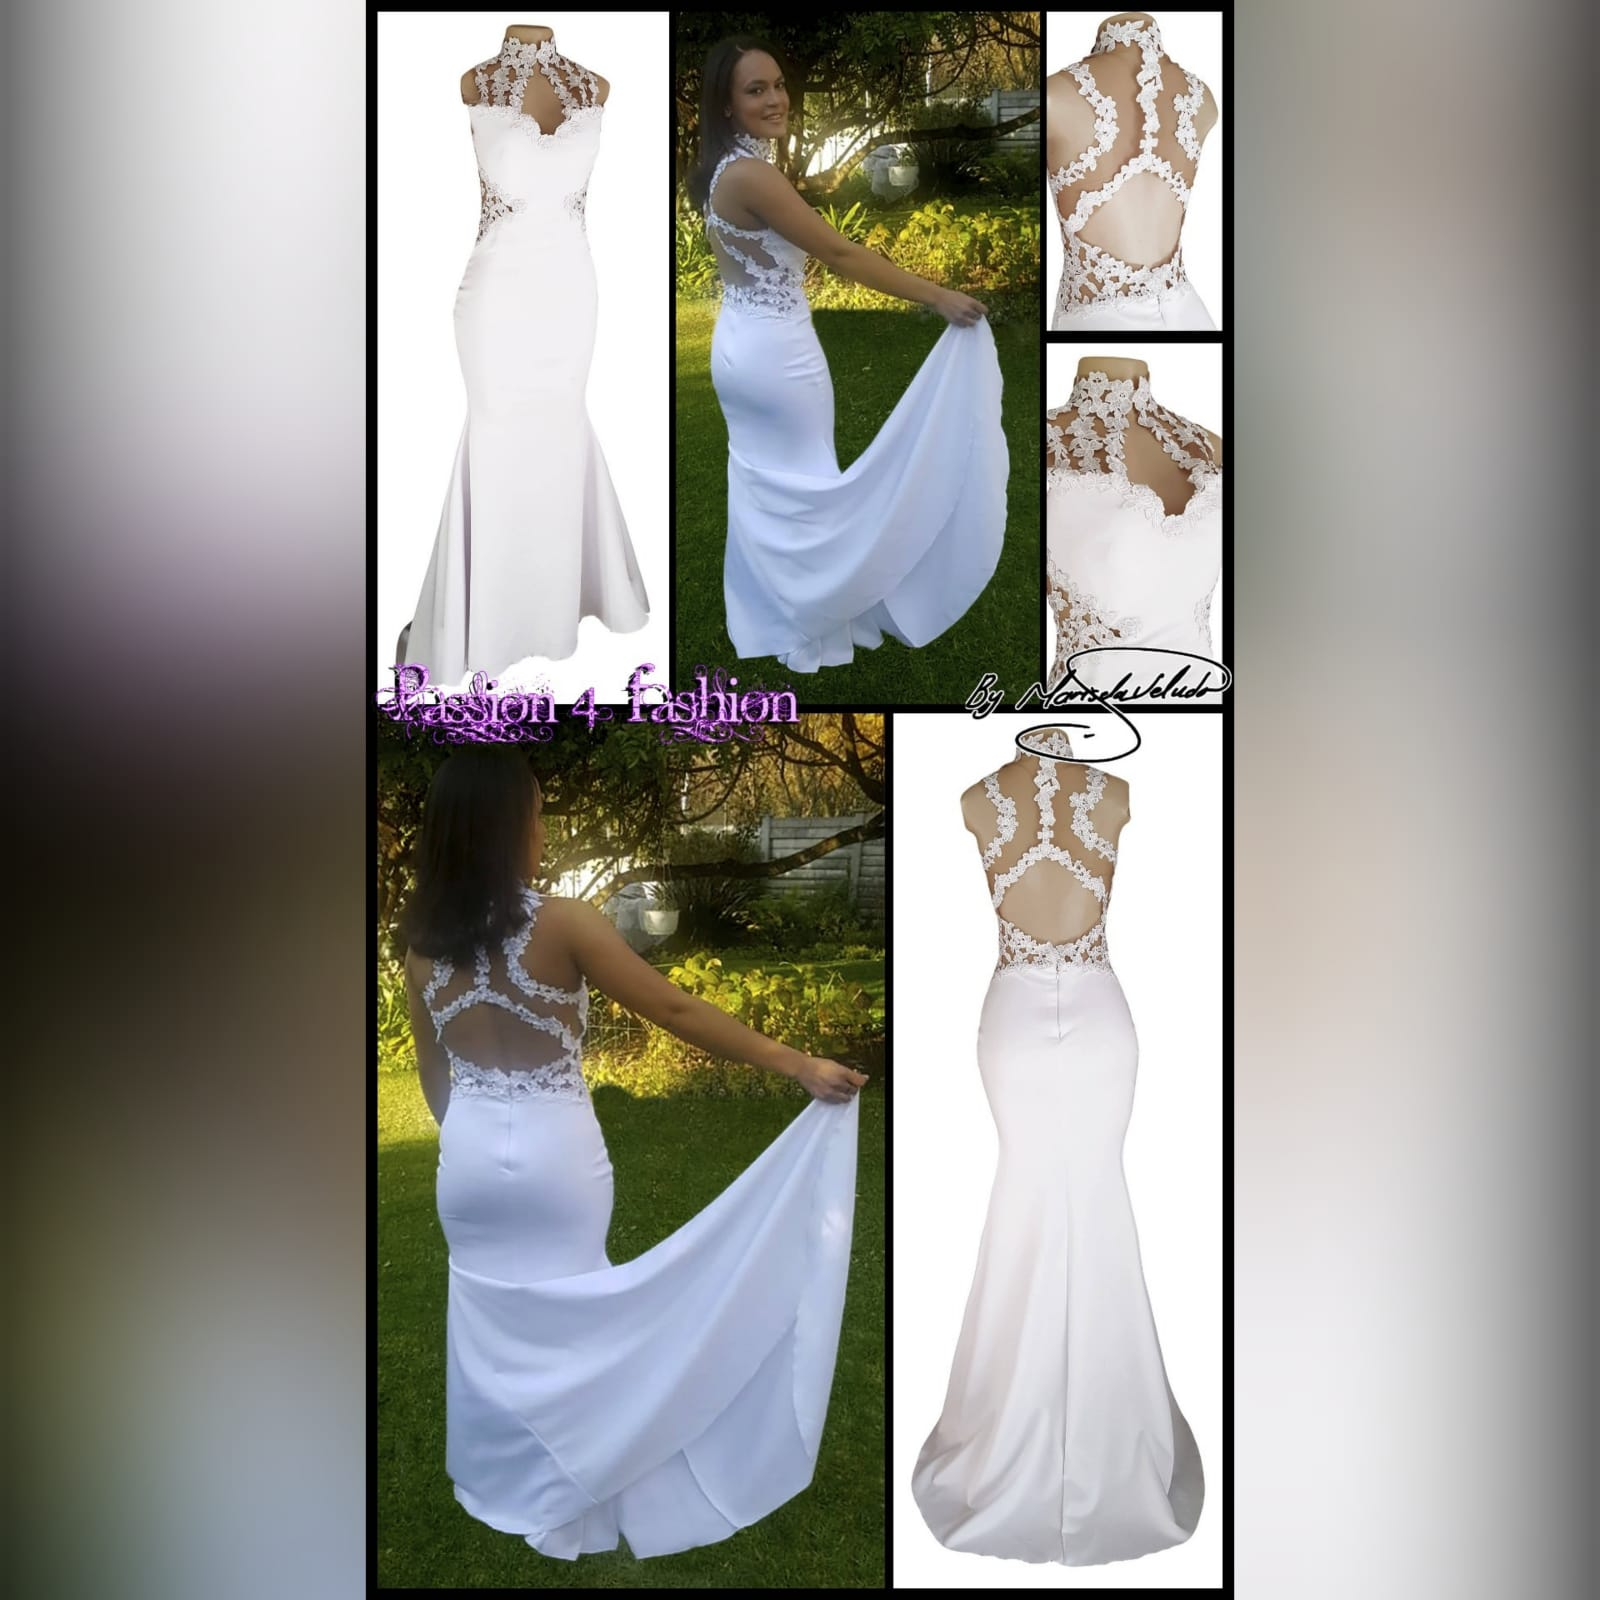 Choker white soft mermaid prom dress 6 white soft mermaid prom dress with a choker neckline and lace detail on the bodice, back & side tummy openings.